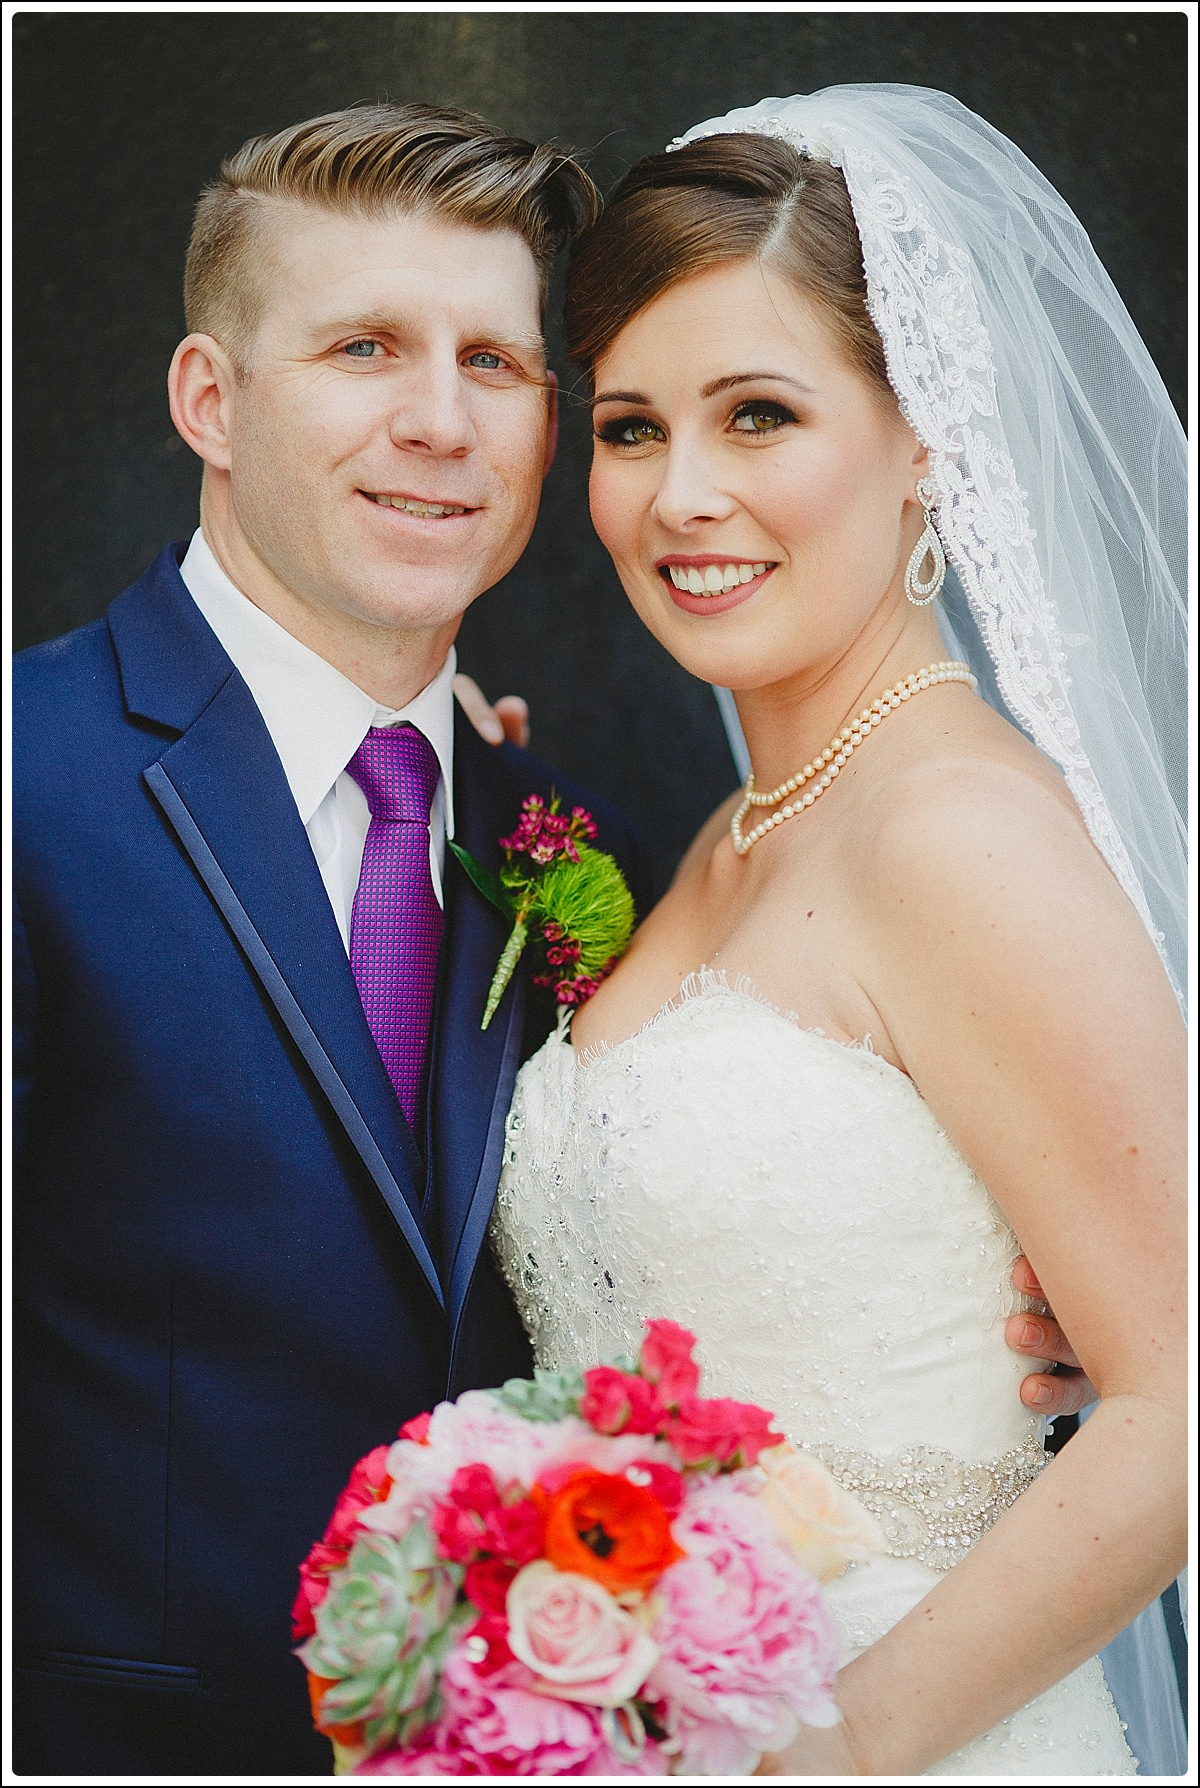 Calgary_Wedding_Photographers_-_Shannon_Teddy_0021.jpg